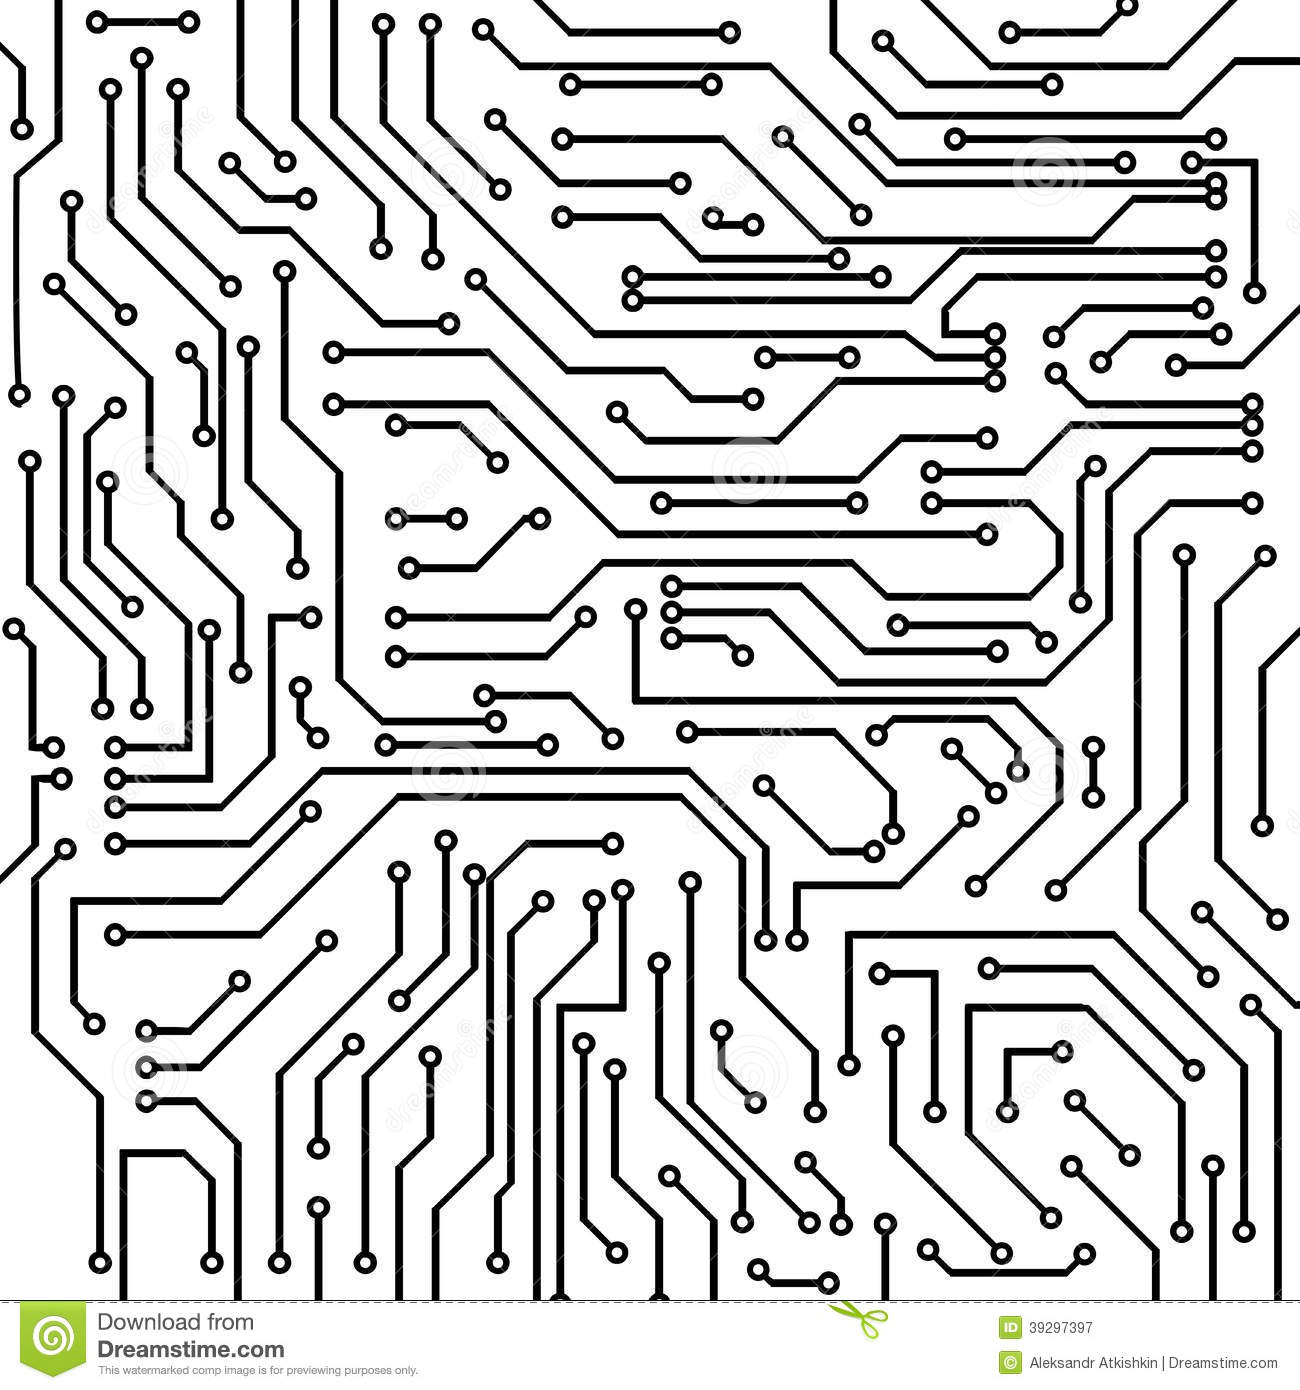 Circuit Board Vector Background Stock Vector - Illustration of ...